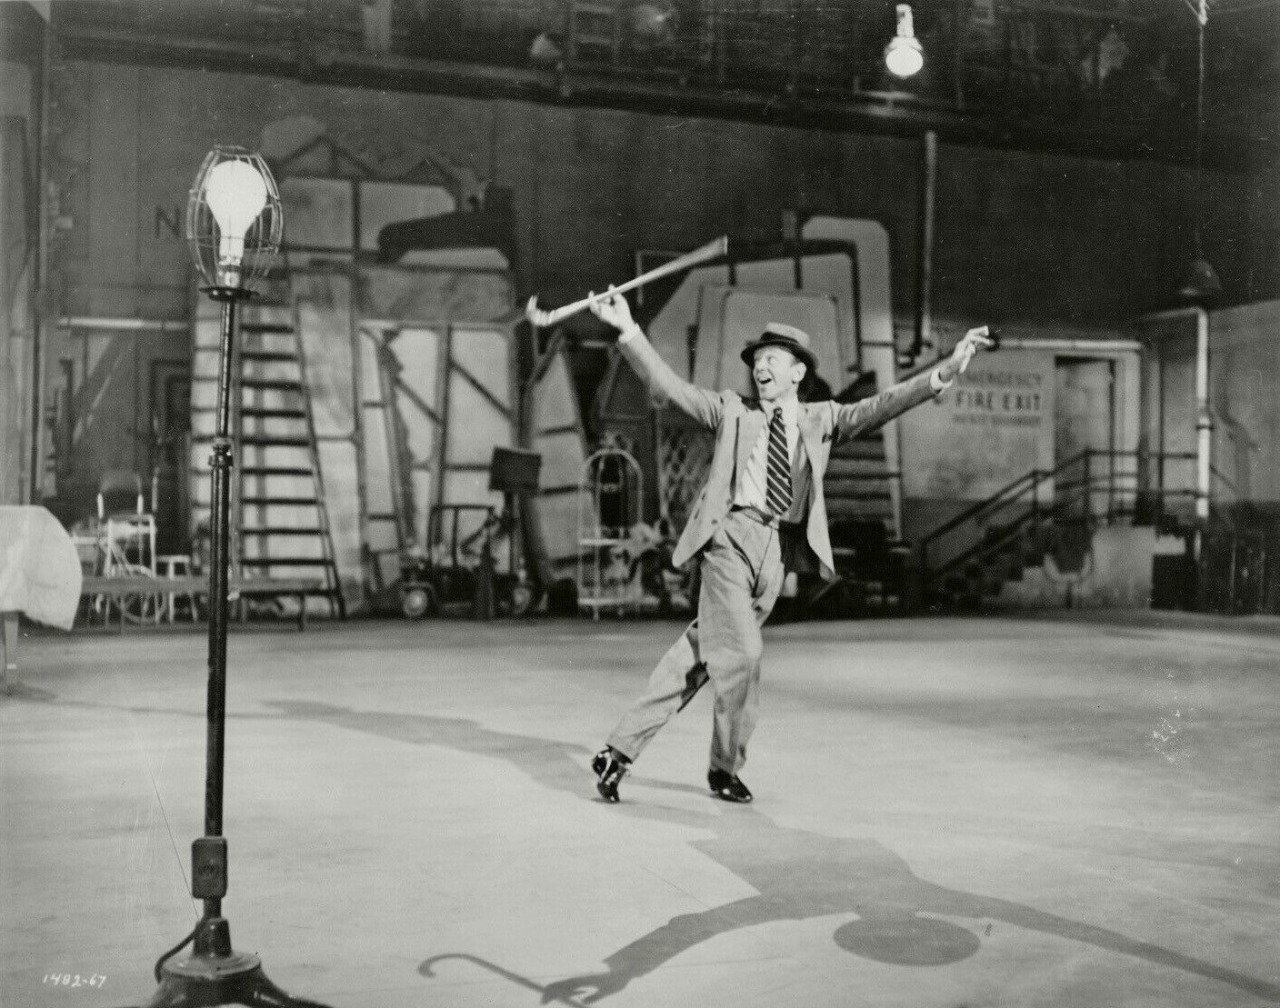 Fred Astaire in Three Little Words, 1950 #fred astaire#dancing#old hollywood#movies #three little words #1950#50s